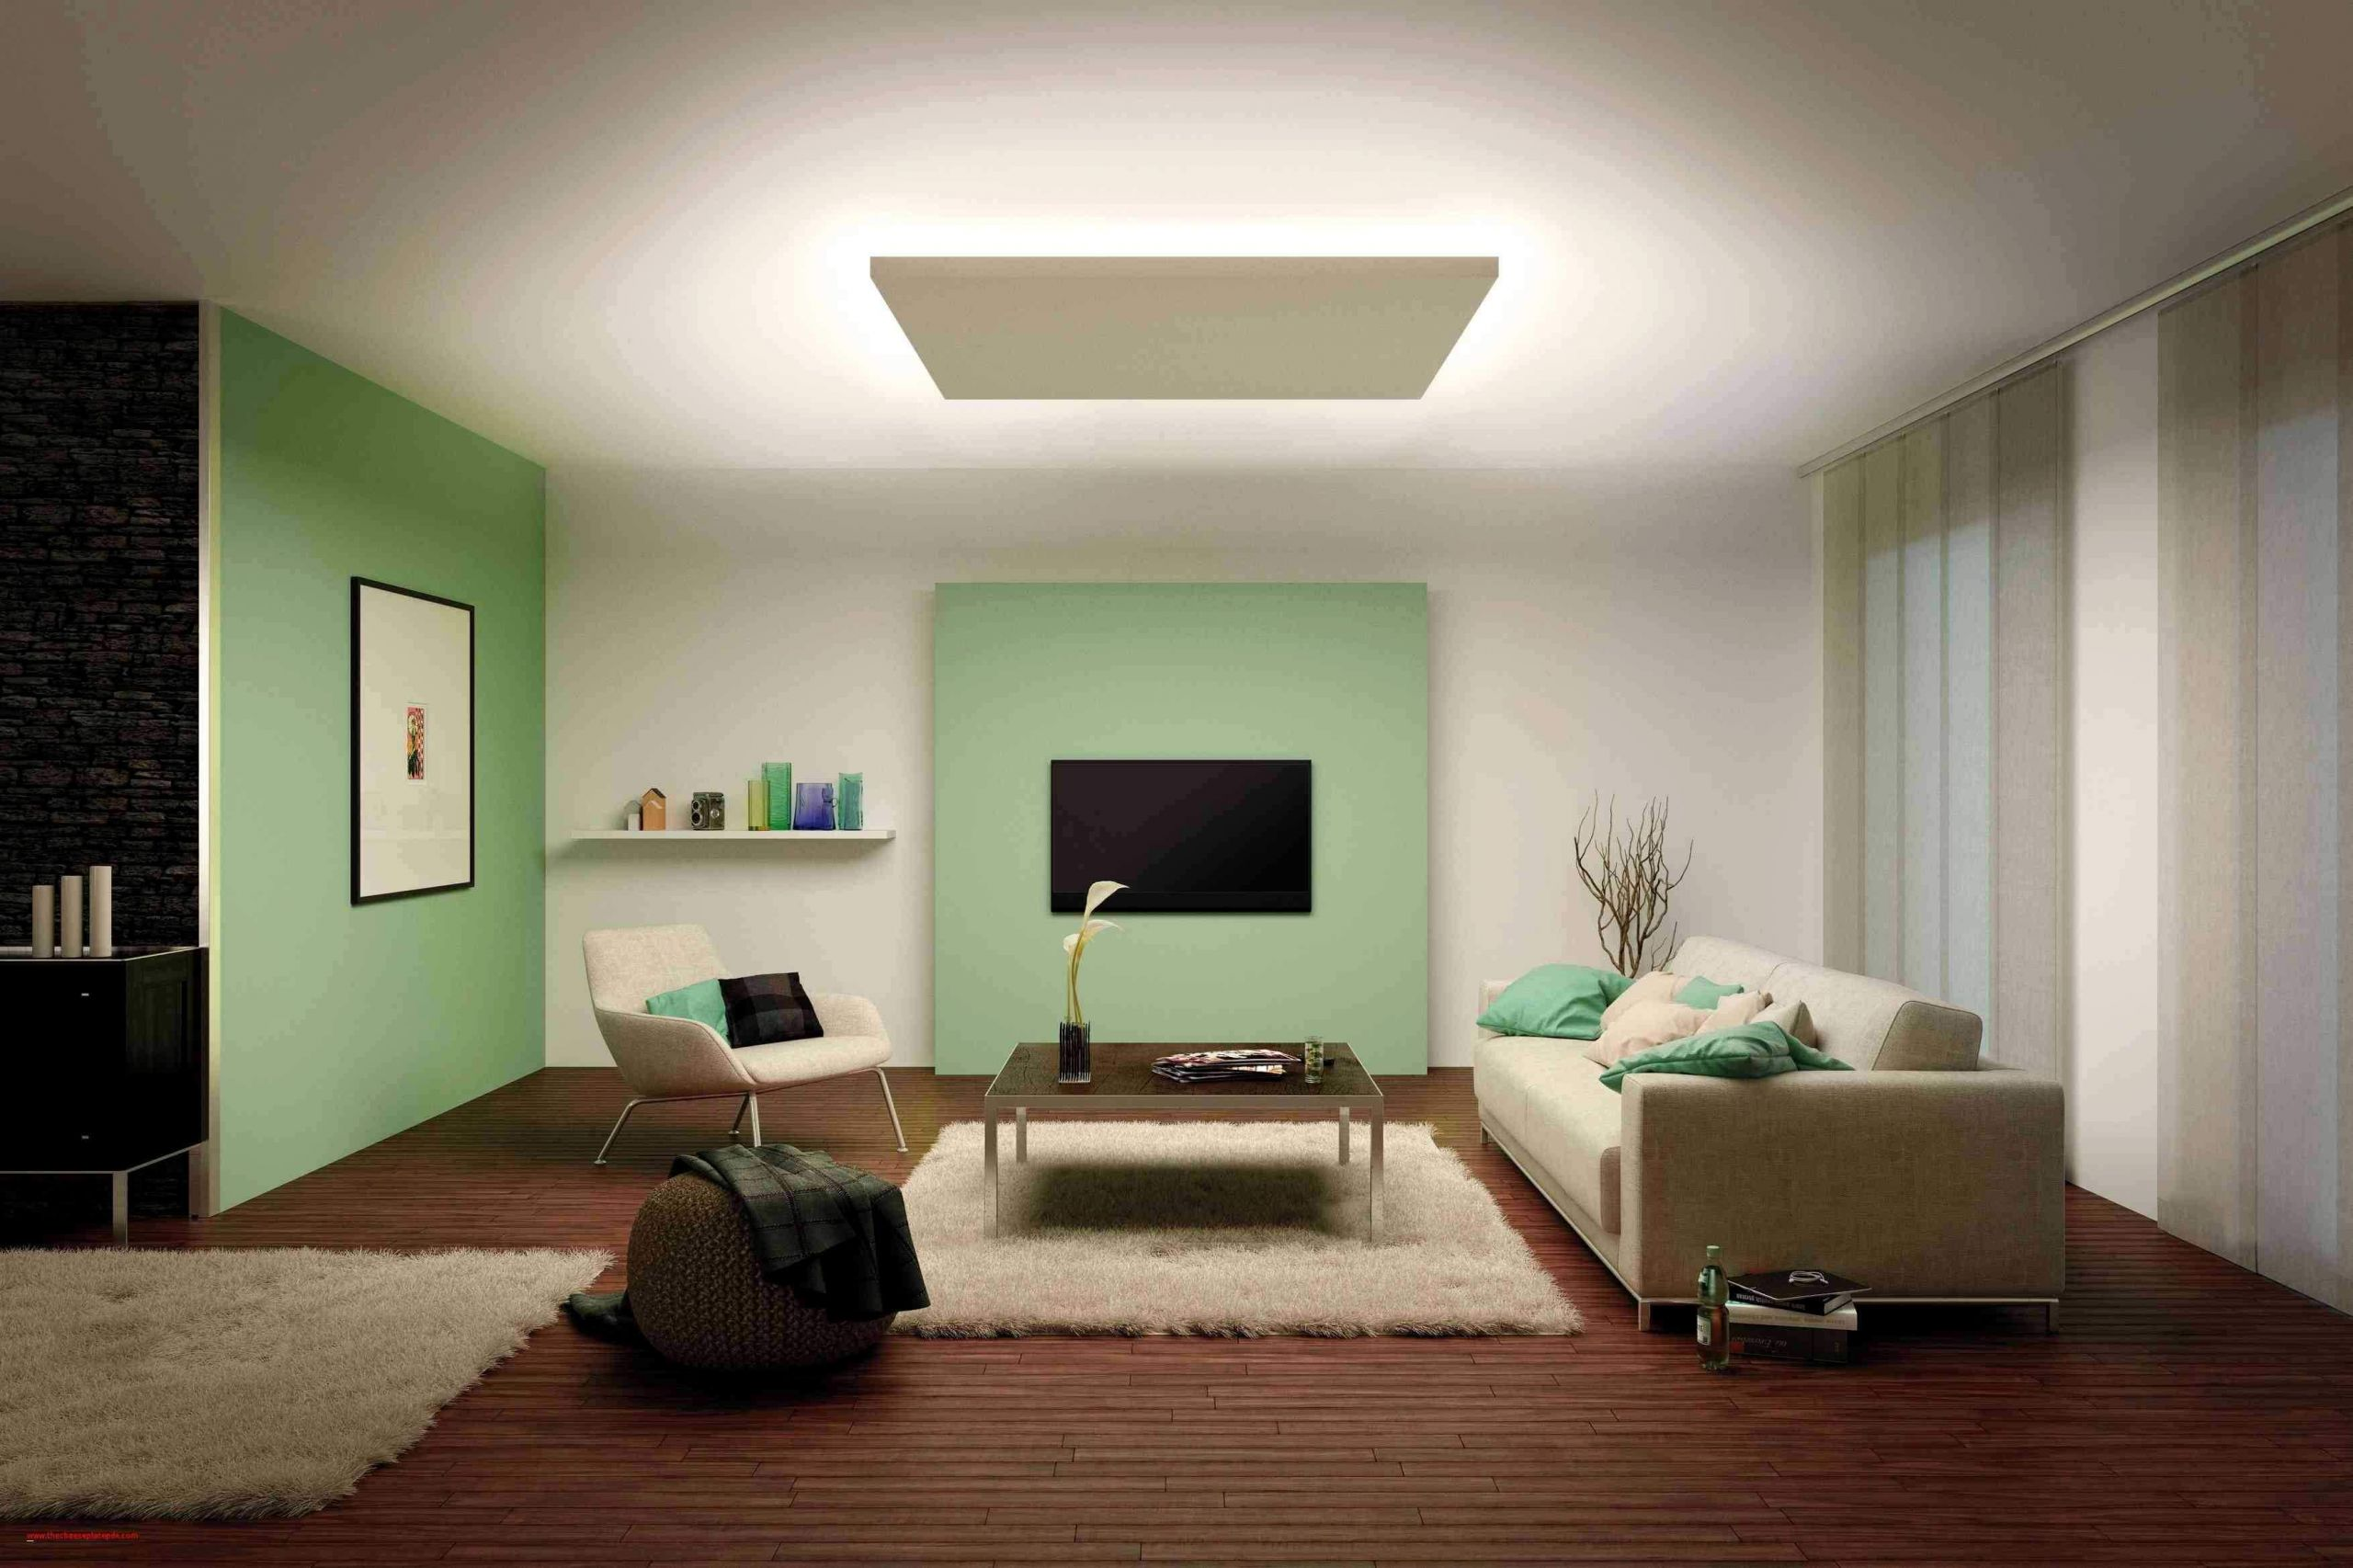 Full Size of Led Beleuchtung Wohnzimmer Decke Led Beleuchtung Für Wohnzimmer Led Beleuchtung Wohnzimmer Planen Wohnzimmer Beleuchtung Mit Led Wohnzimmer Led Beleuchtung Wohnzimmer